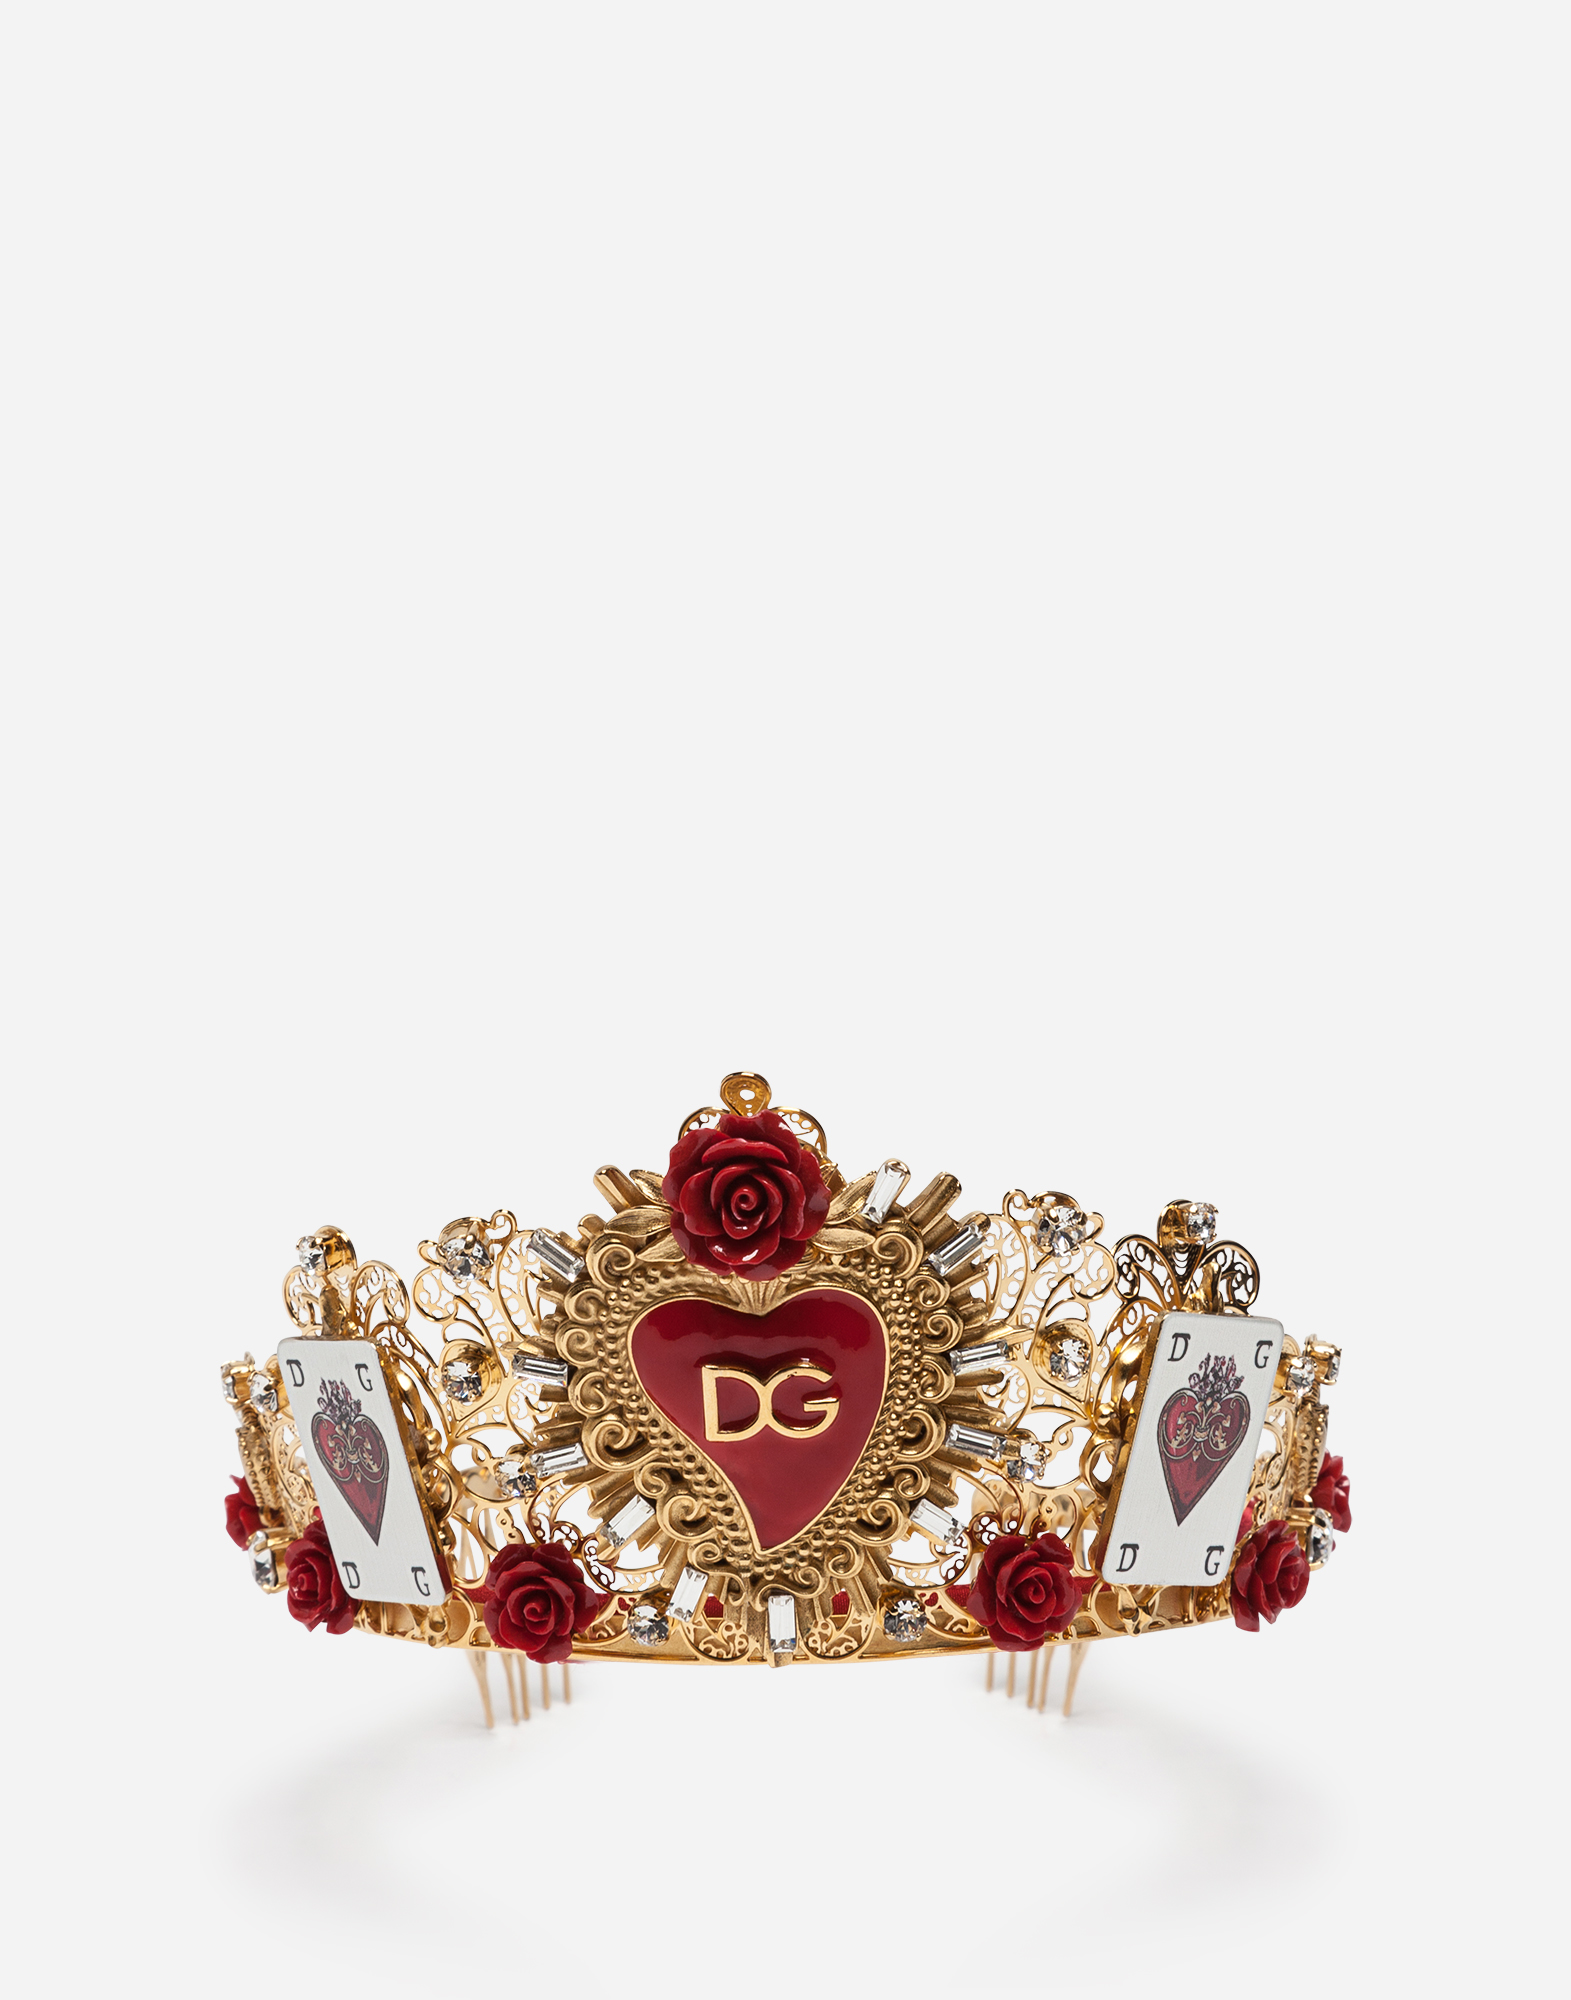 TIARA WITH DECORATIVE ELEMENTS